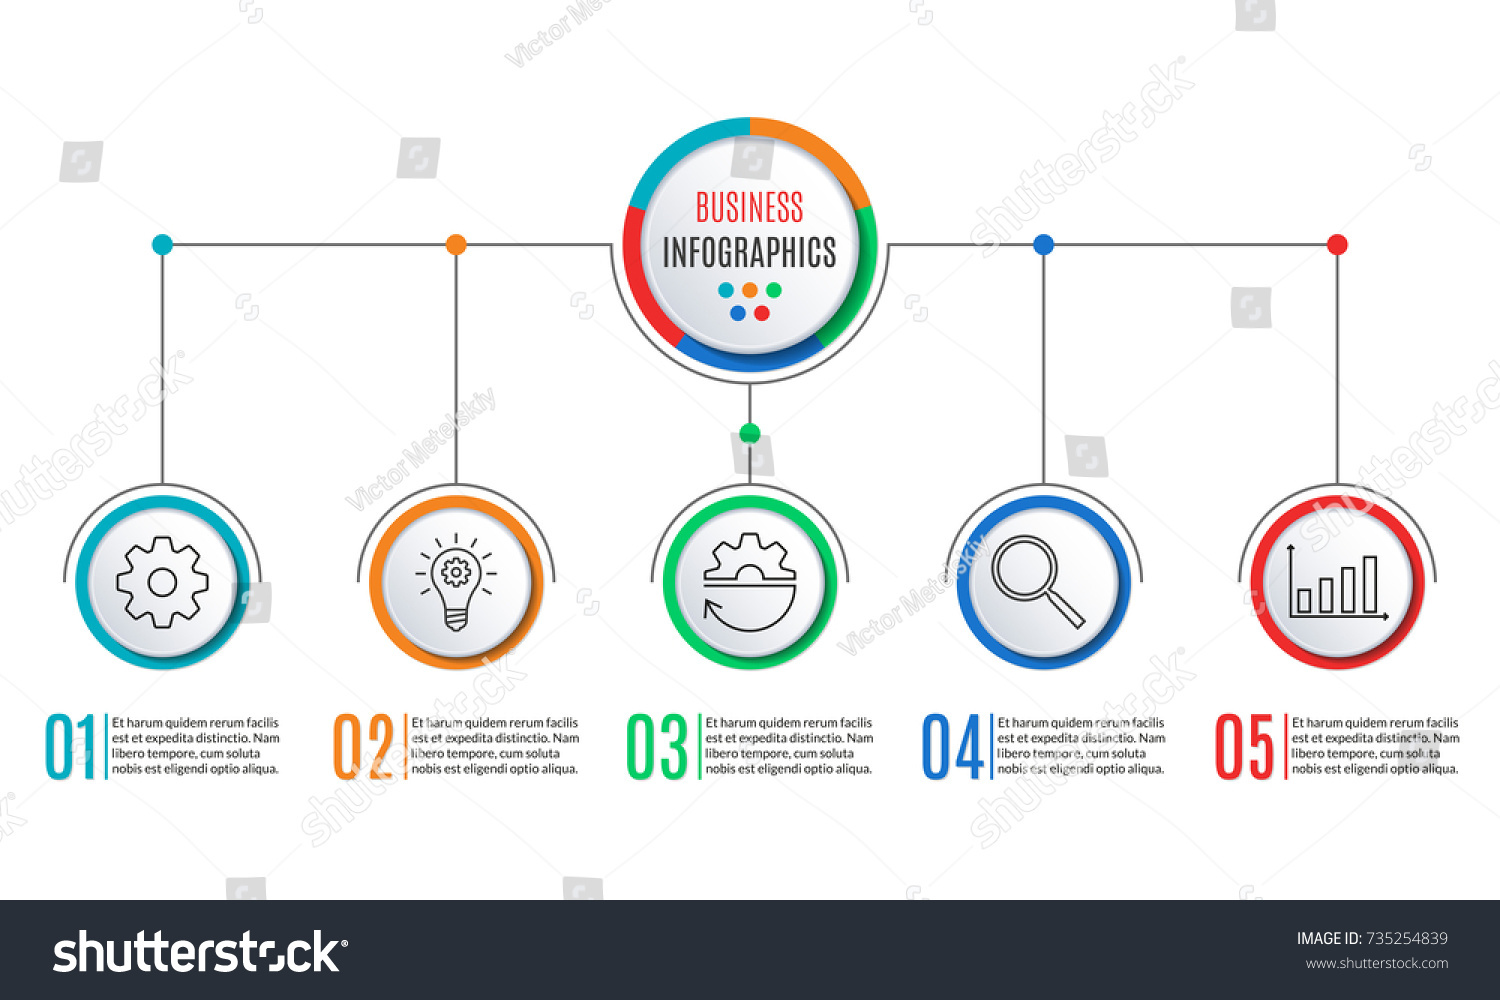 5 Steps Infographics Business Presentation Circle Stock Illustration Process Flow Diagram Levels For Infographic Template With Options